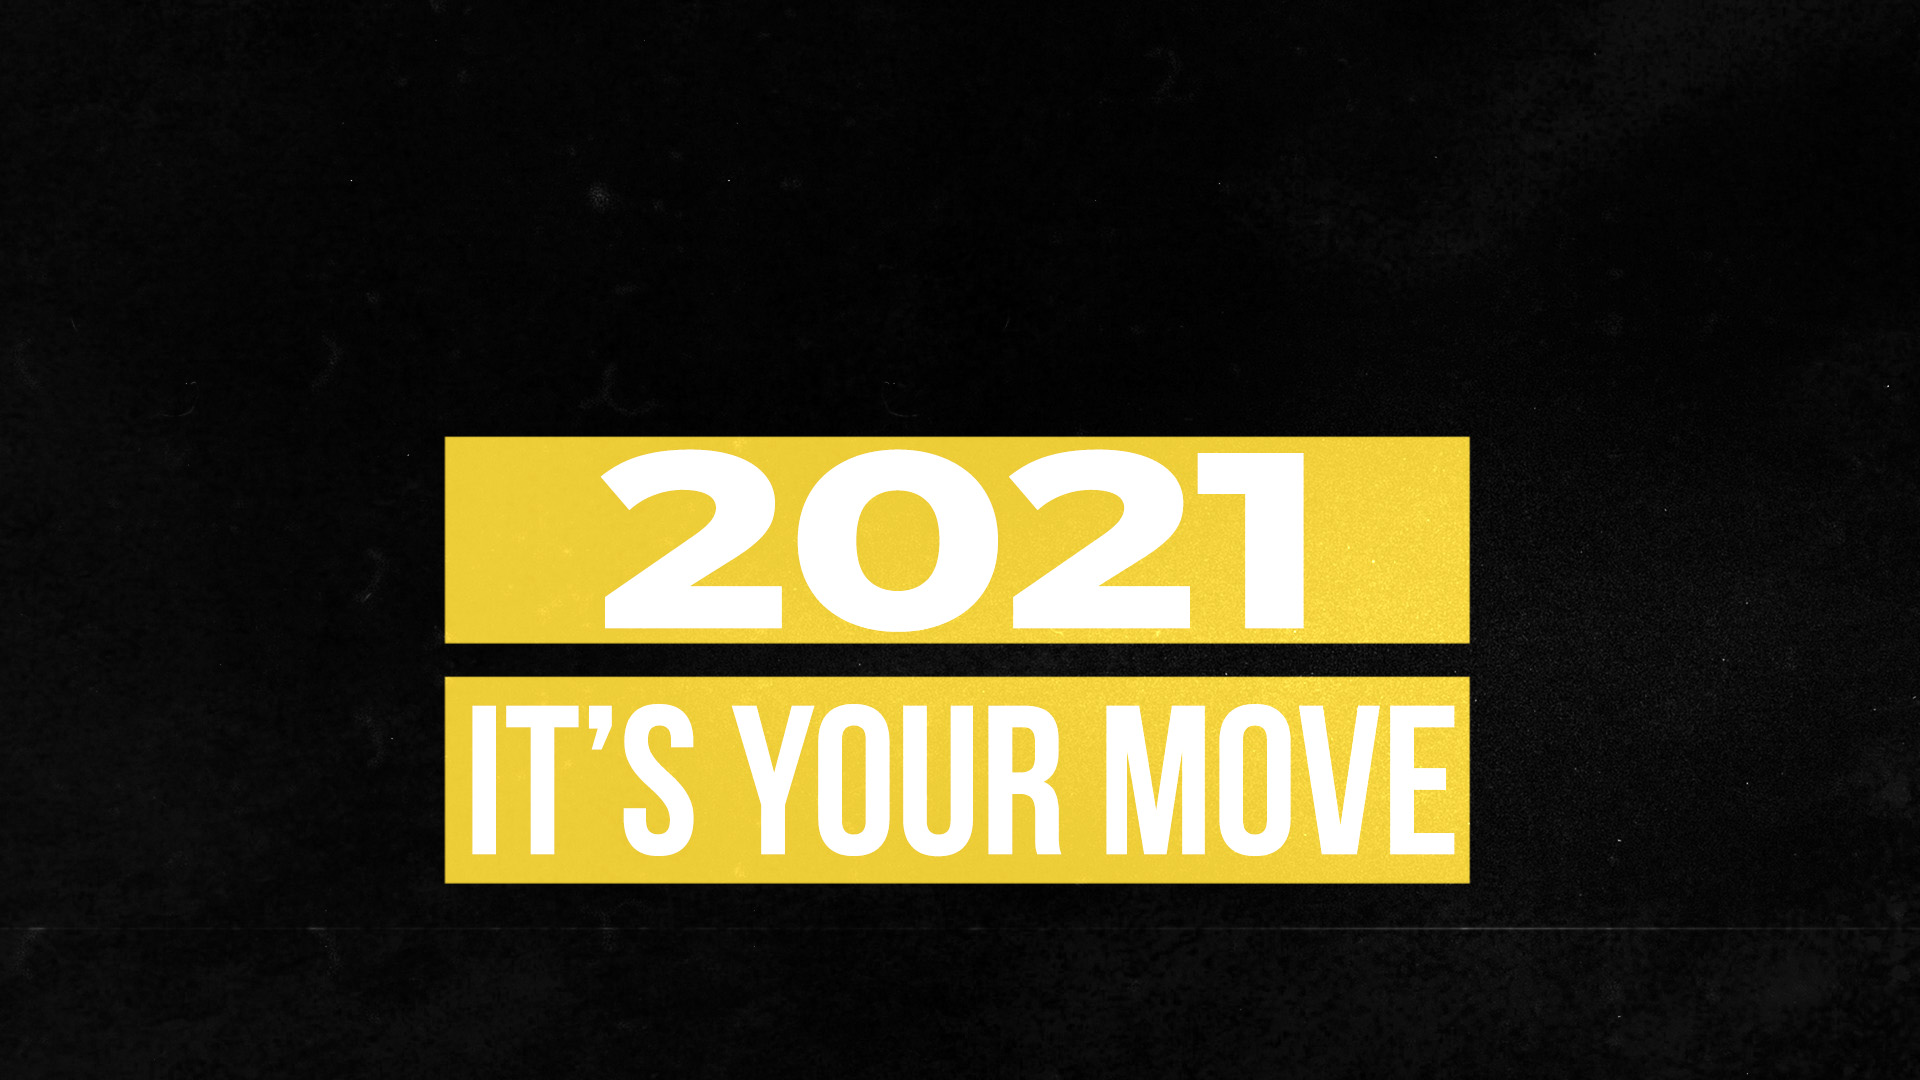 2021 It's Your Mo ve